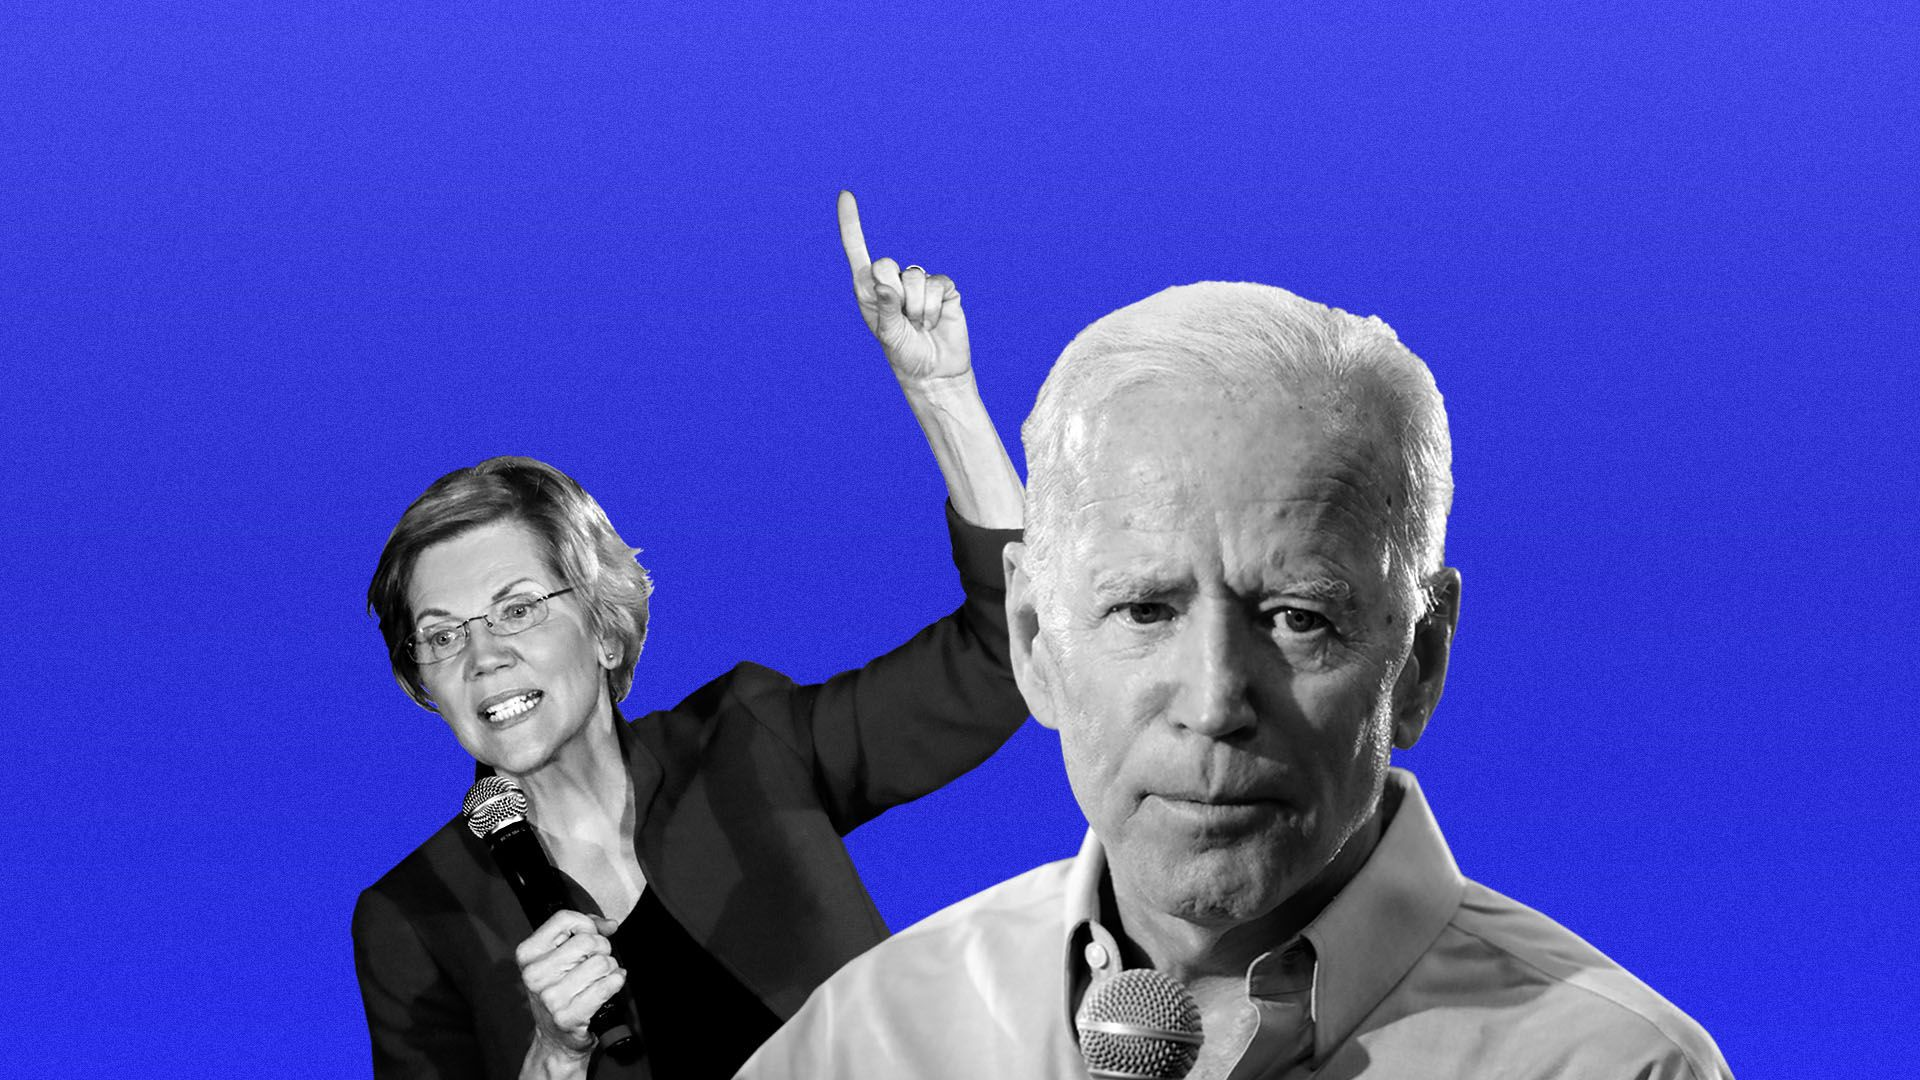 Joe Biden has an Elizabeth Warren problem